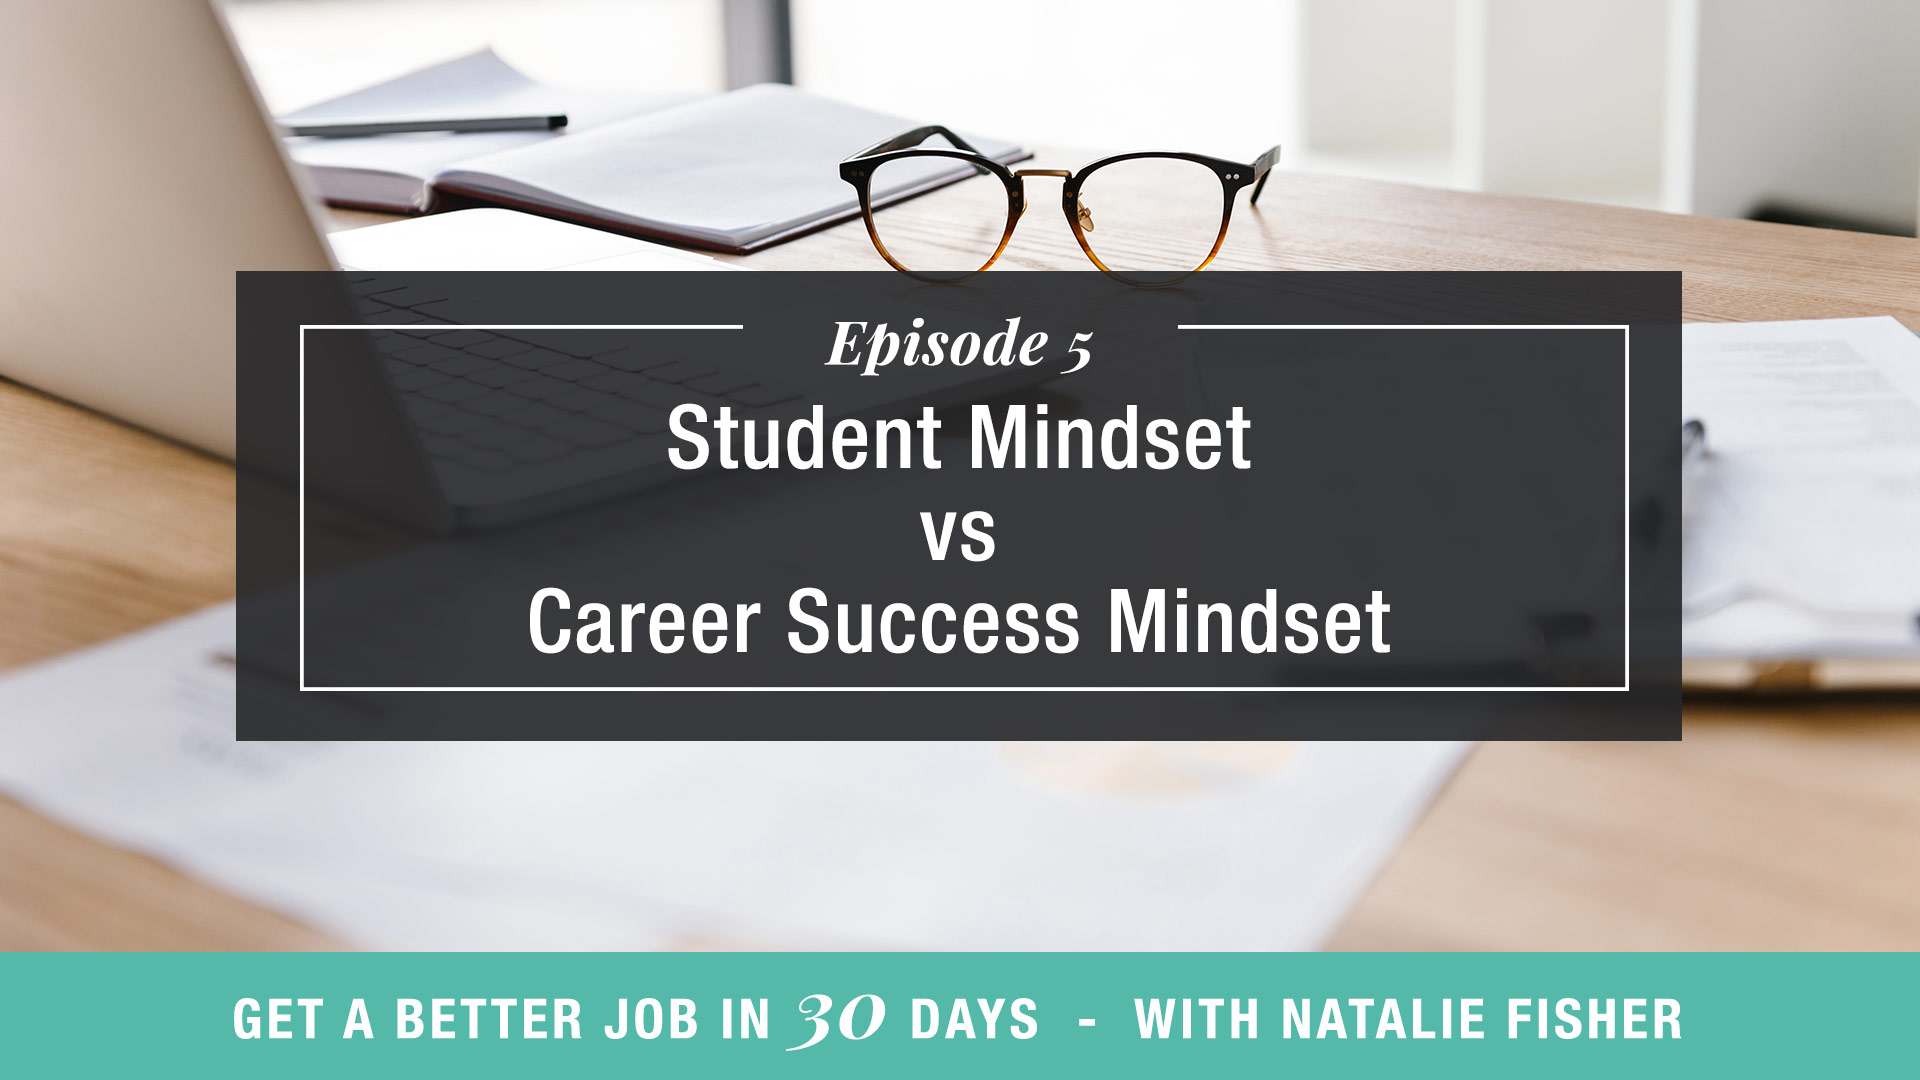 Student Mindset vs Career Success Mindset